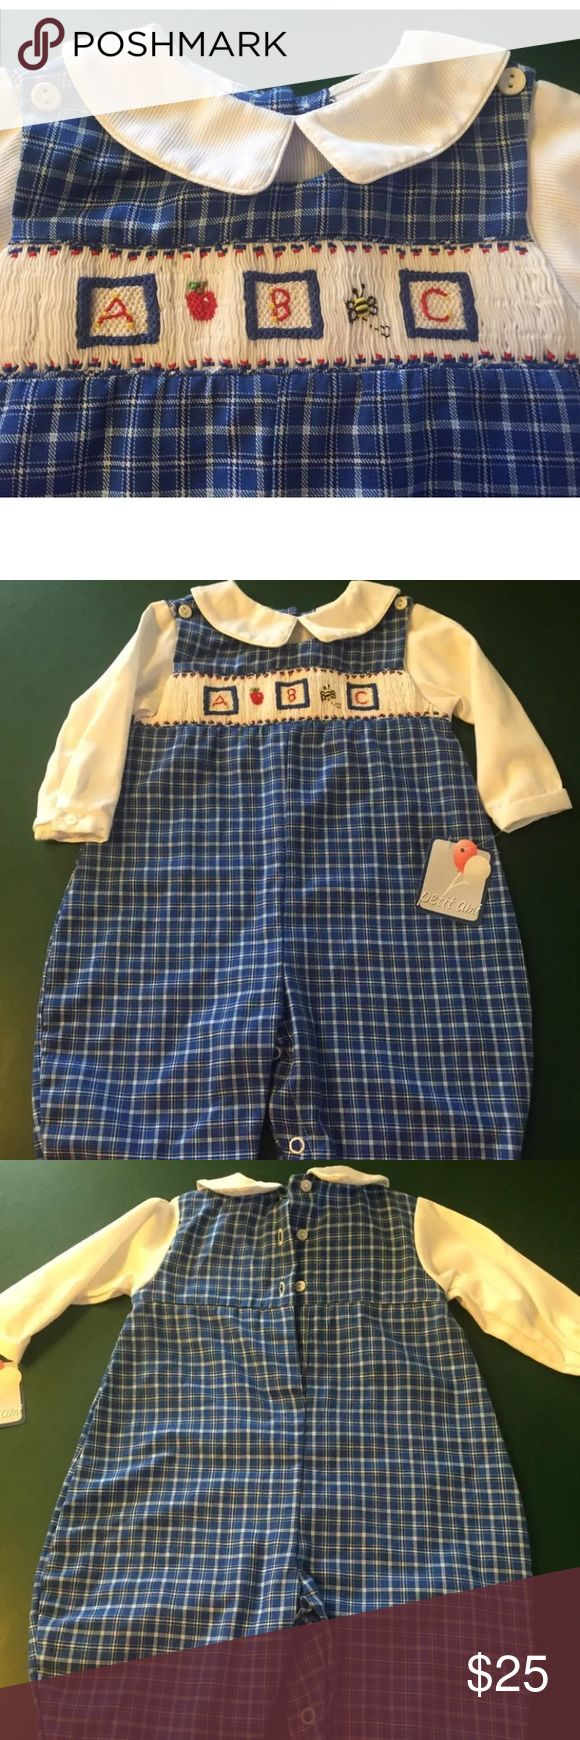 Petit ami boys longall size 6 months gingham New petite ami One Pieces Bodysuits